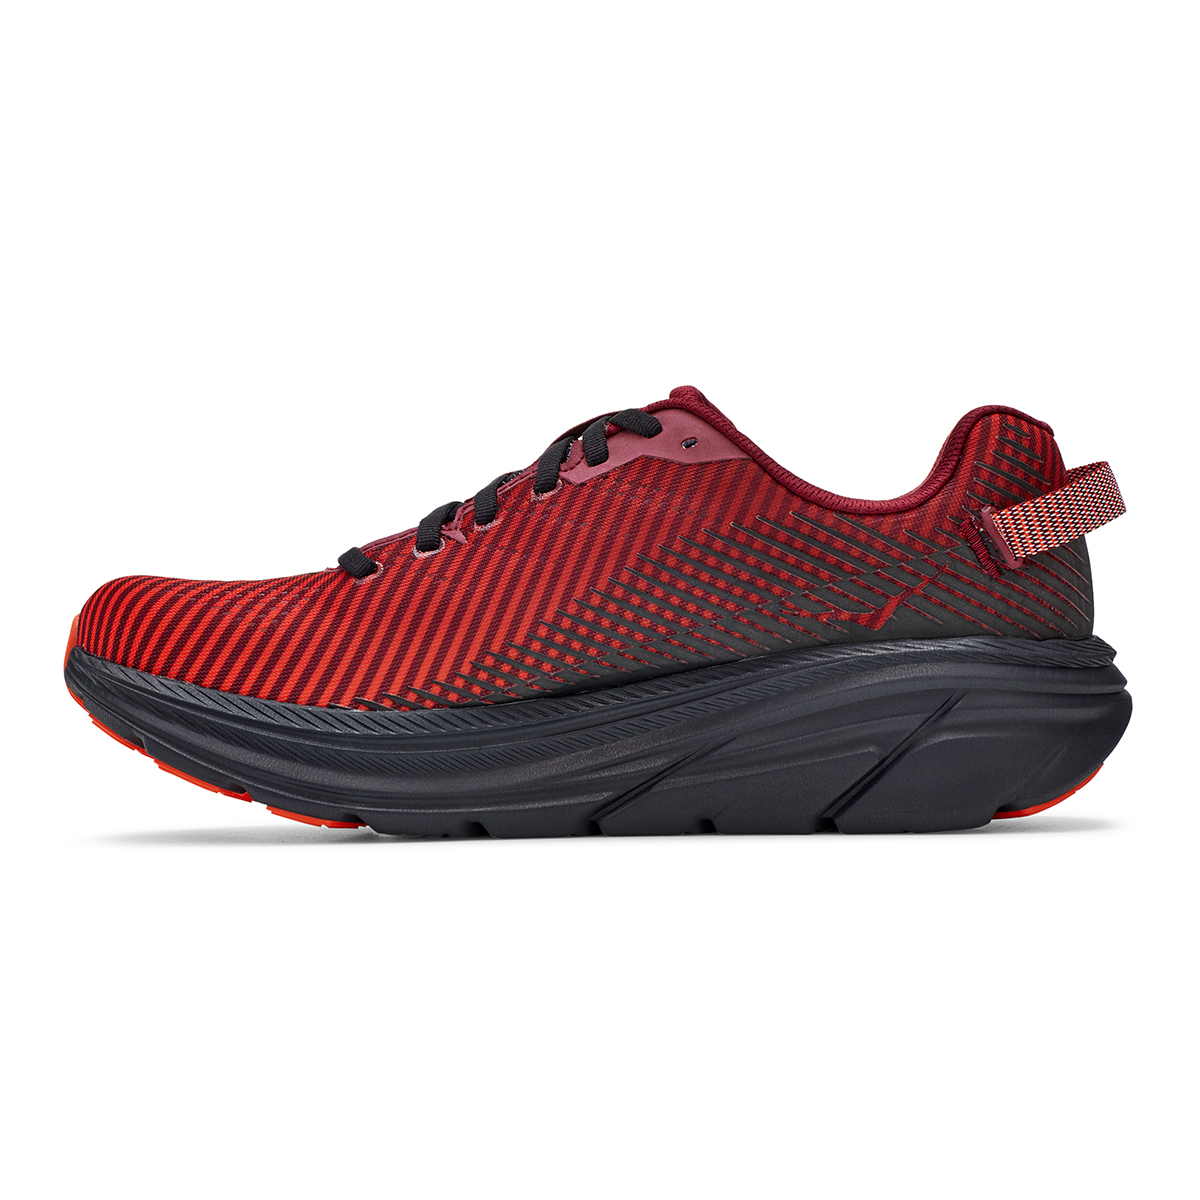 Men's Hoka One One Rincon 2 Running Shoe - Color: Cordovan/Anthracite - Size: 7 - Width: Regular, Cordovan/Anthracite, large, image 6